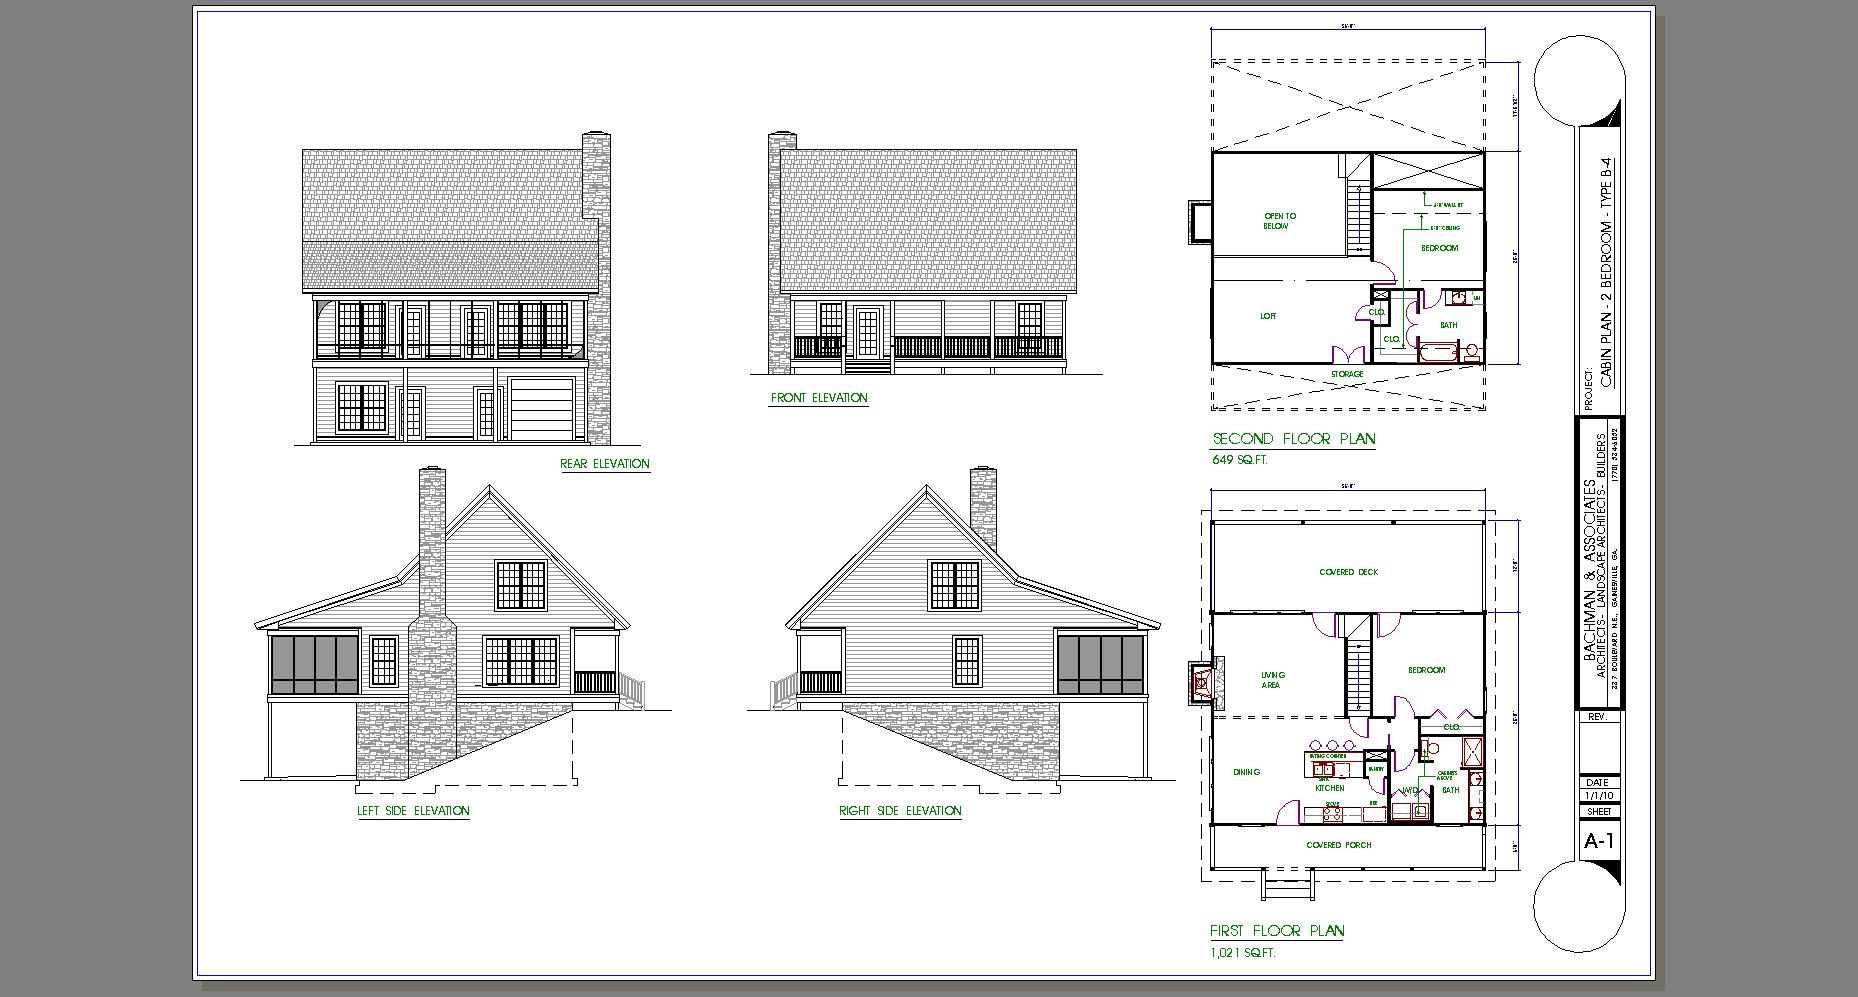 2 bedroom cabin plans 2 bedroom cottage house plans 4 for 4 bedroom cabin floor plans